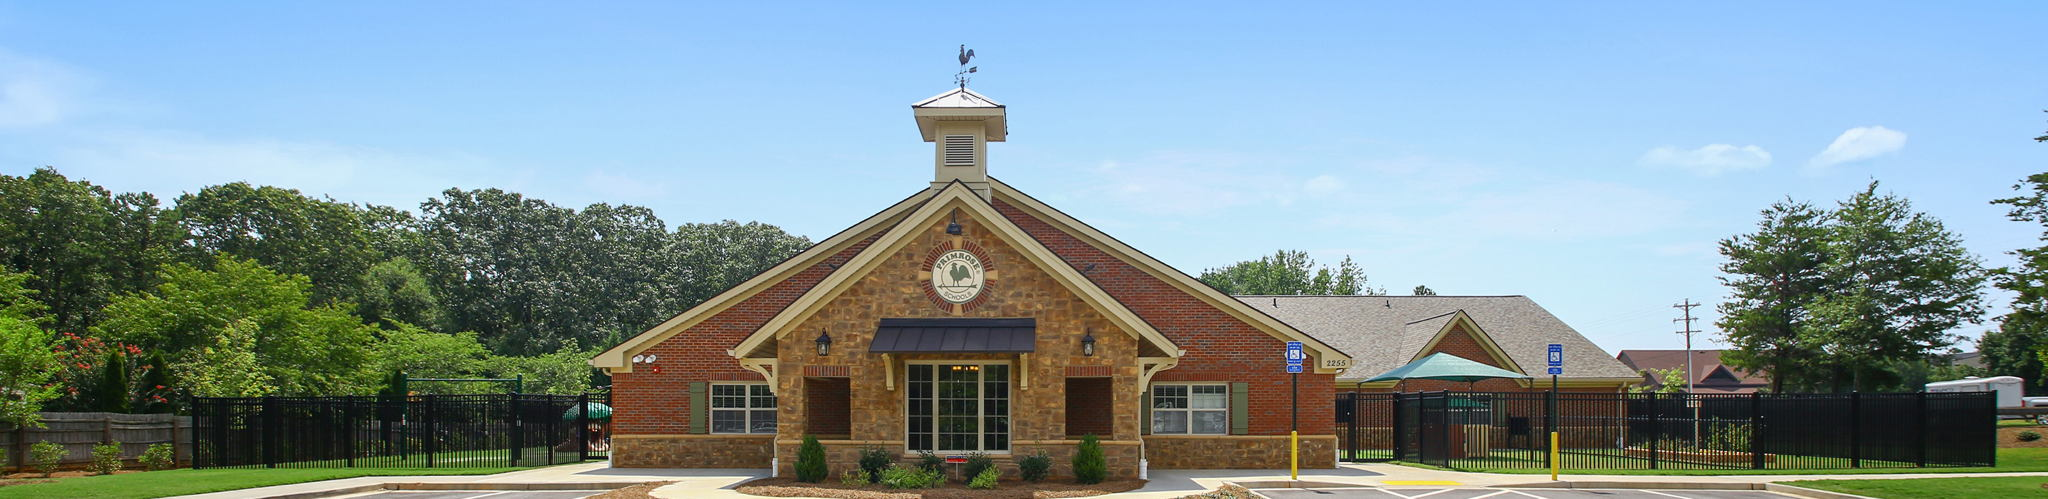 Exterior of a Primrose School of Simpsonville at Five Forks